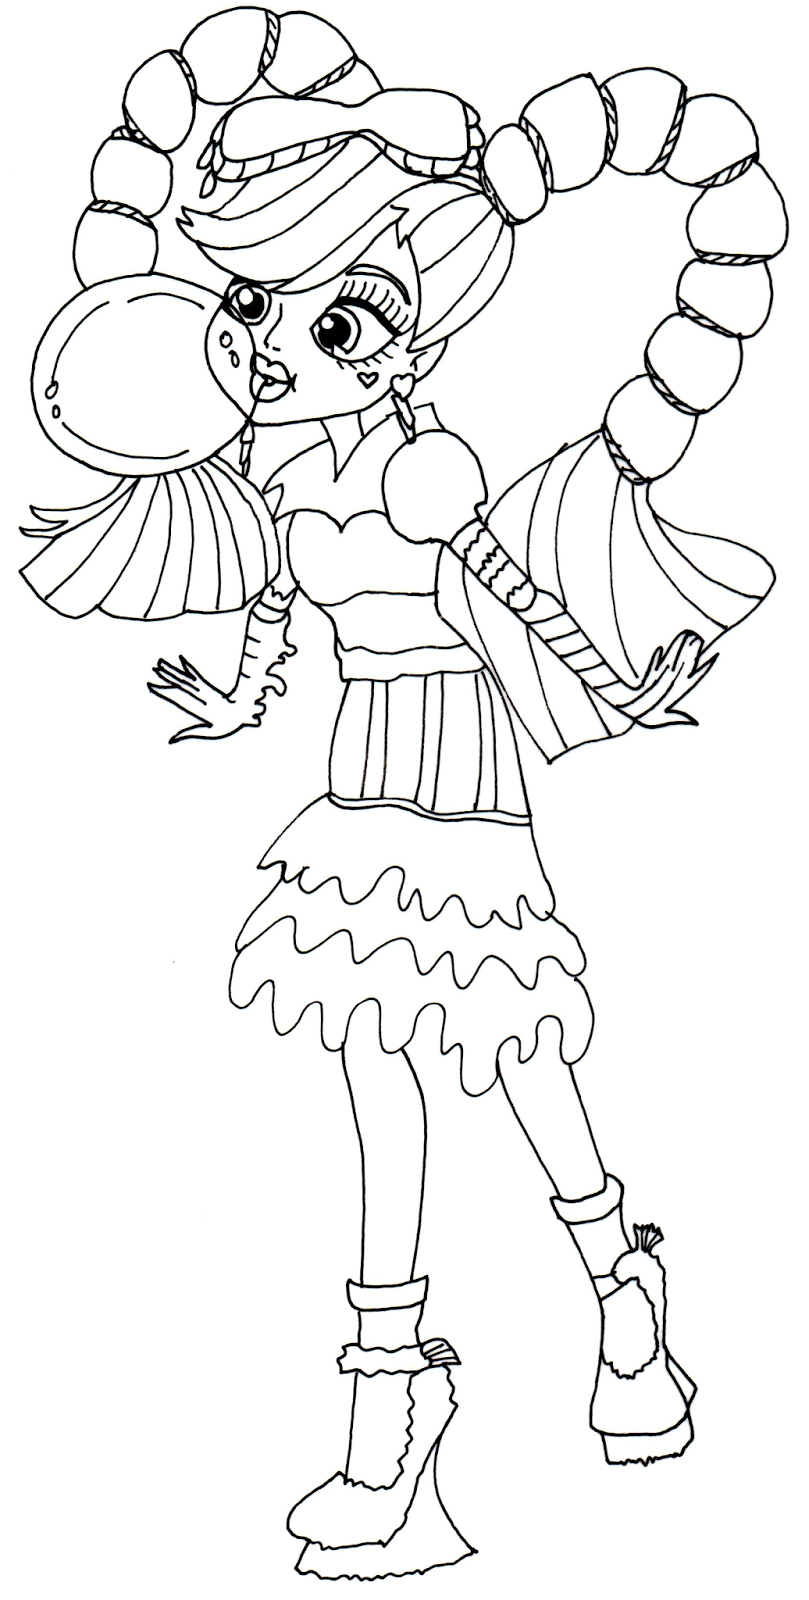 Juicy image for printable monster high coloring pages